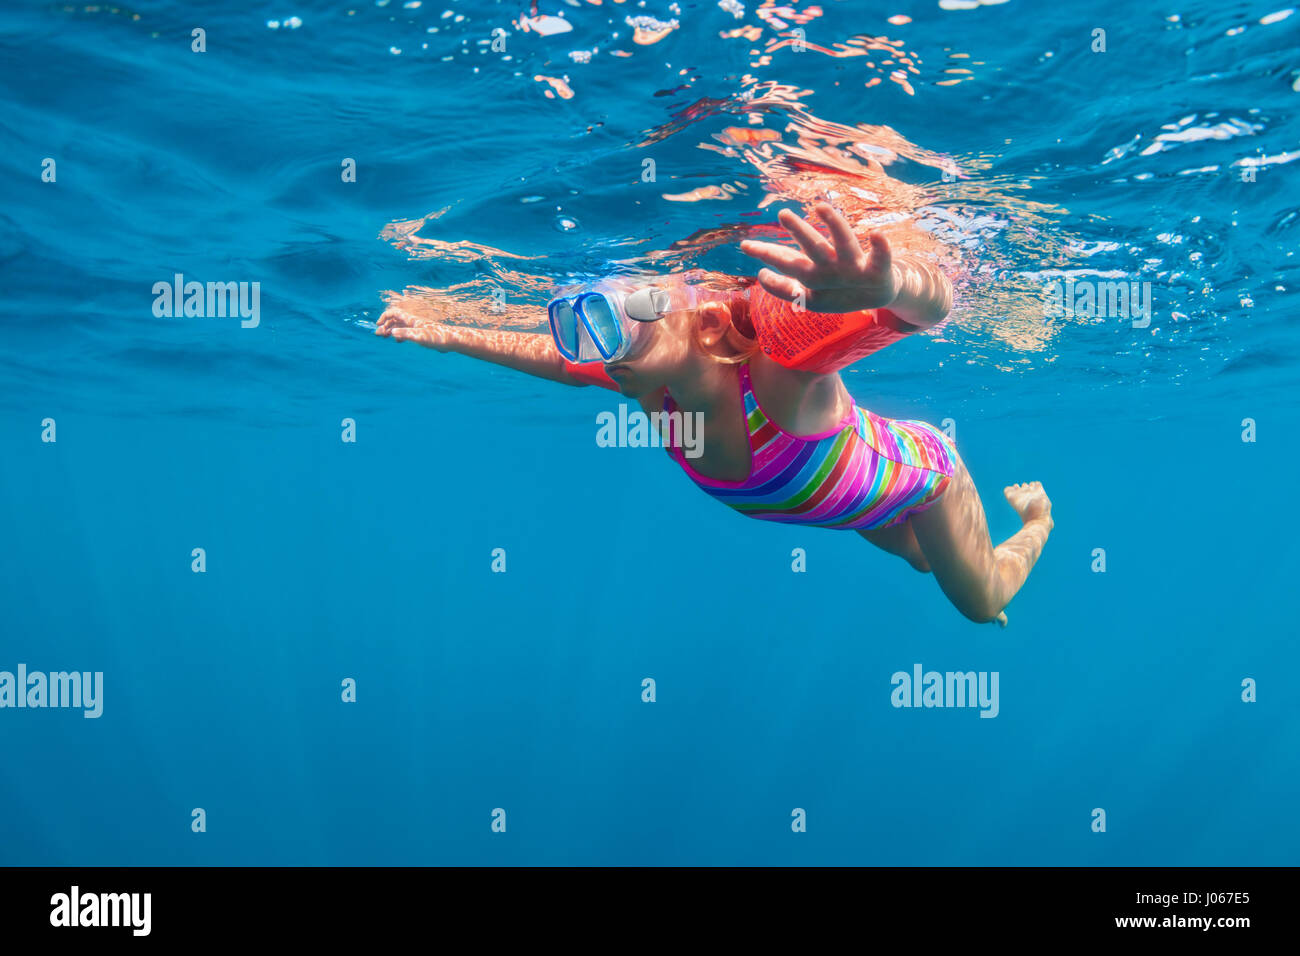 Happy baby girl in snorkeling mask dive underwater with fun in sea pool. Healthy lifestyle, people water sport outdoor - Stock Image